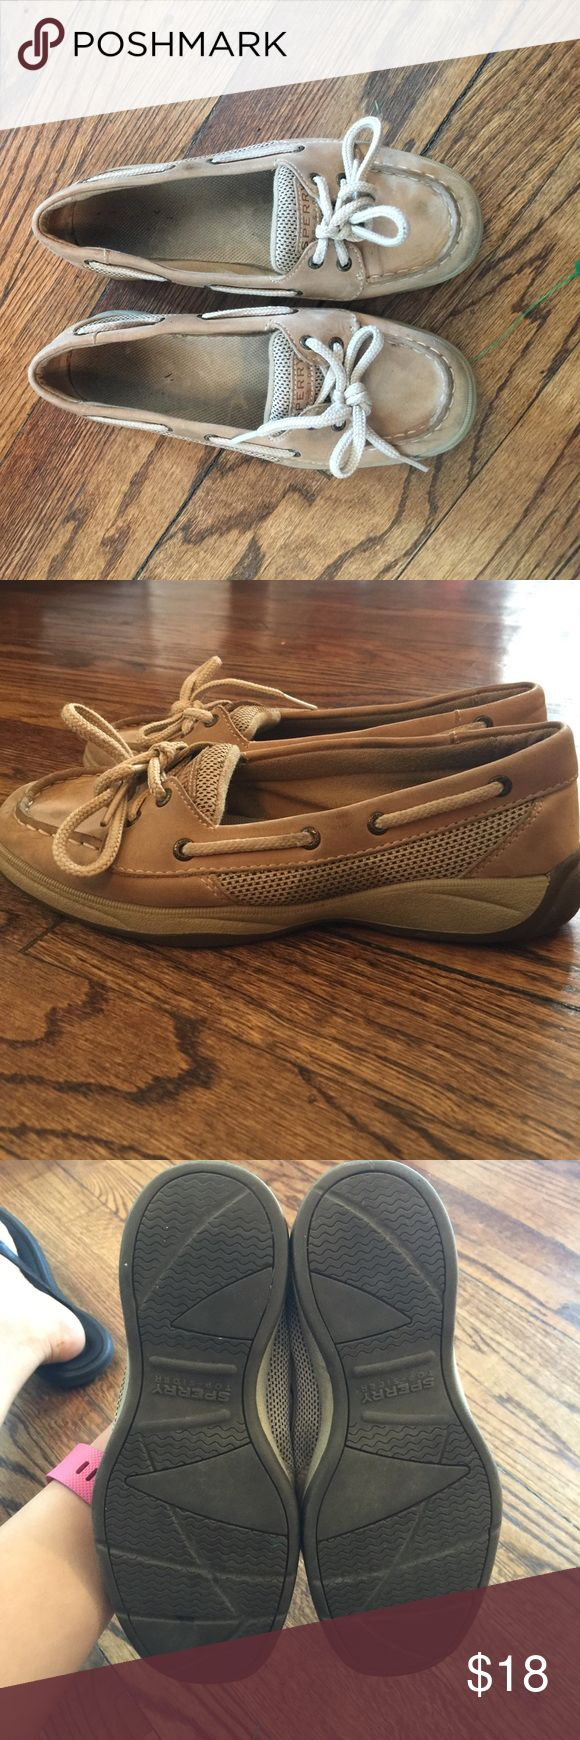 Girls sperry top sliders in tan Good used condition with plenty of wear left in these shoes. Open to offers Sperry Top-Sider Shoes Sneakers